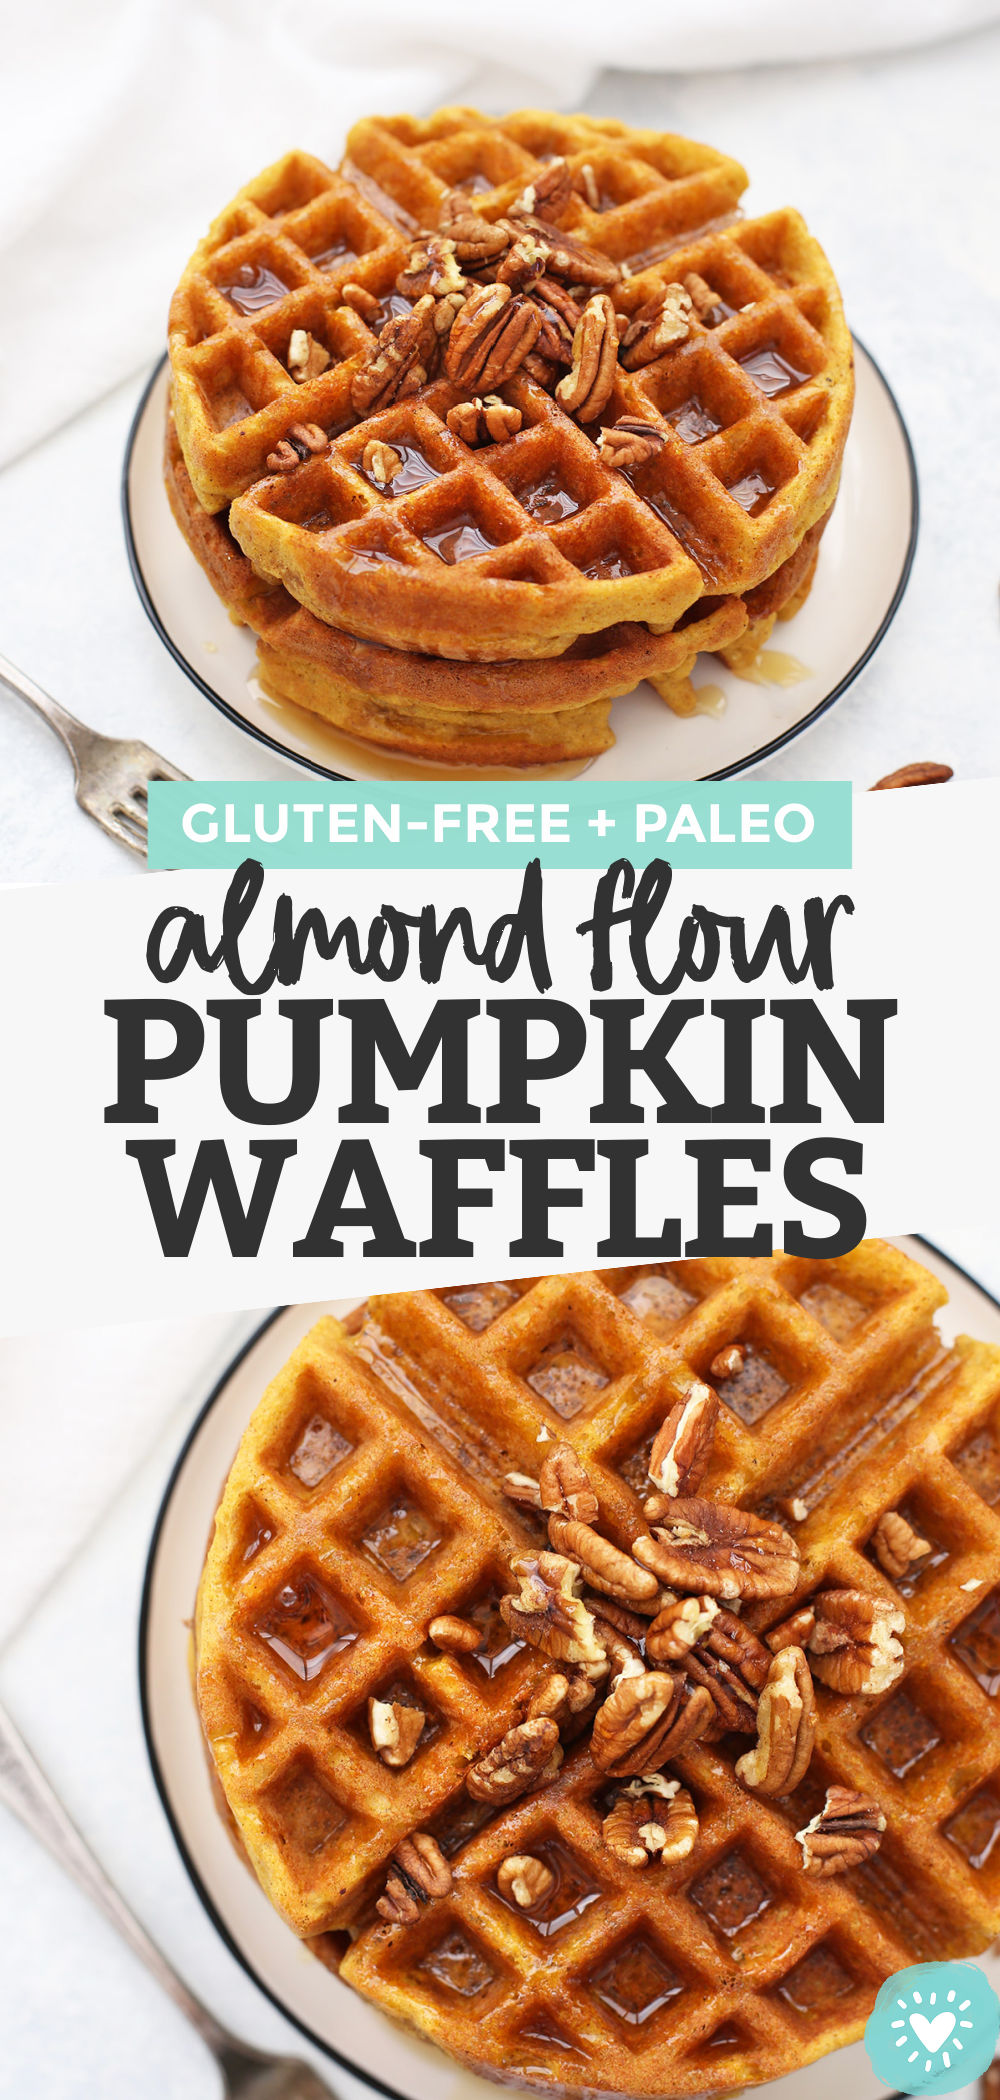 Almond Flour Pumpkin Waffles - These paleo pumpkin waffles are naturally gluten free, and completely delicious. Crispy on the outside and fluffy on the inside. // Paleo waffle recipe // almond flour waffle recipe // gluten free waffle recipe // gluten free pumpkin waffles recipe // paleo pumpkin waffles recipe // almond flour waffles recipe // pumpkin waffles recipe // paleo breakfast // paleo brunch // paleo pumpkin recipes // gluten free breakfast // meal prep breakfast